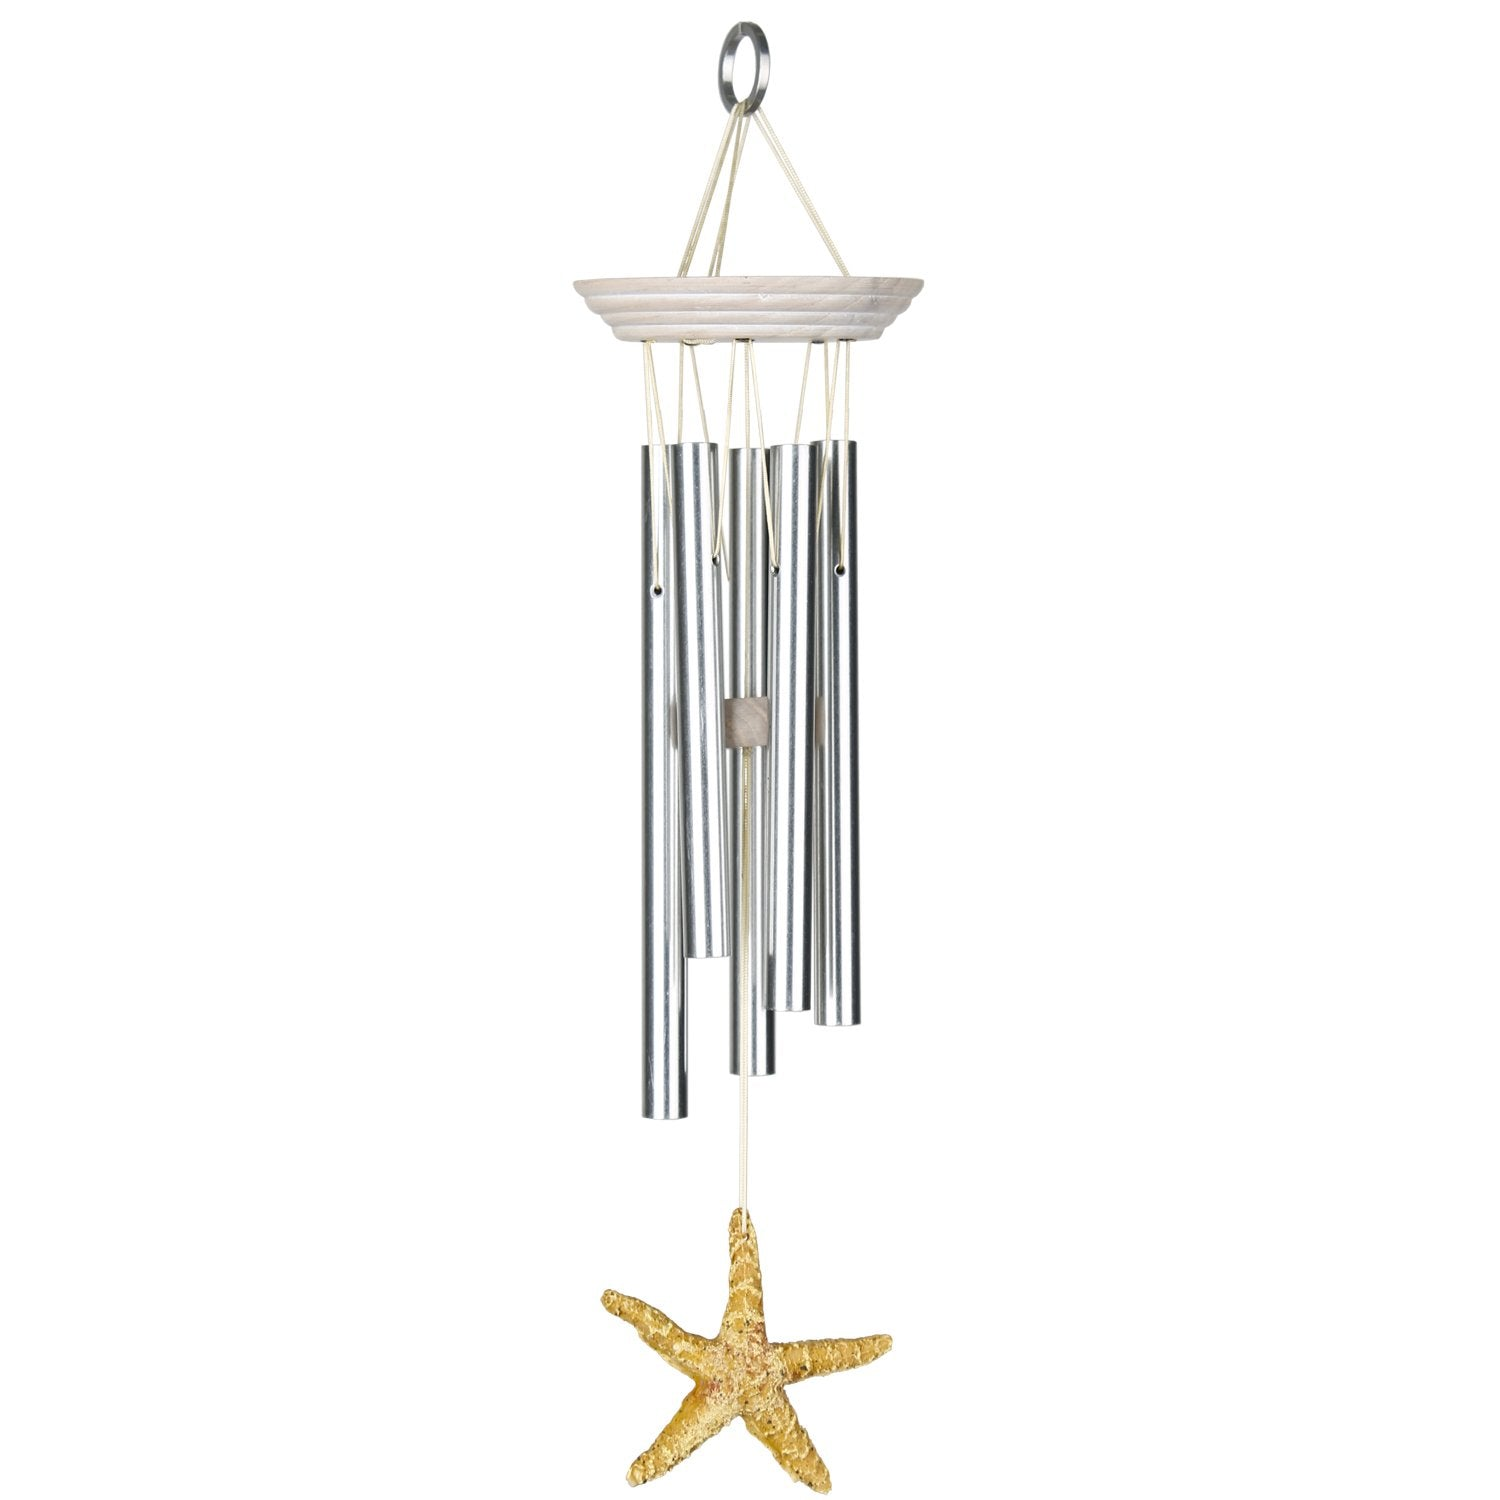 Seashore Chime - Sea Star full product image